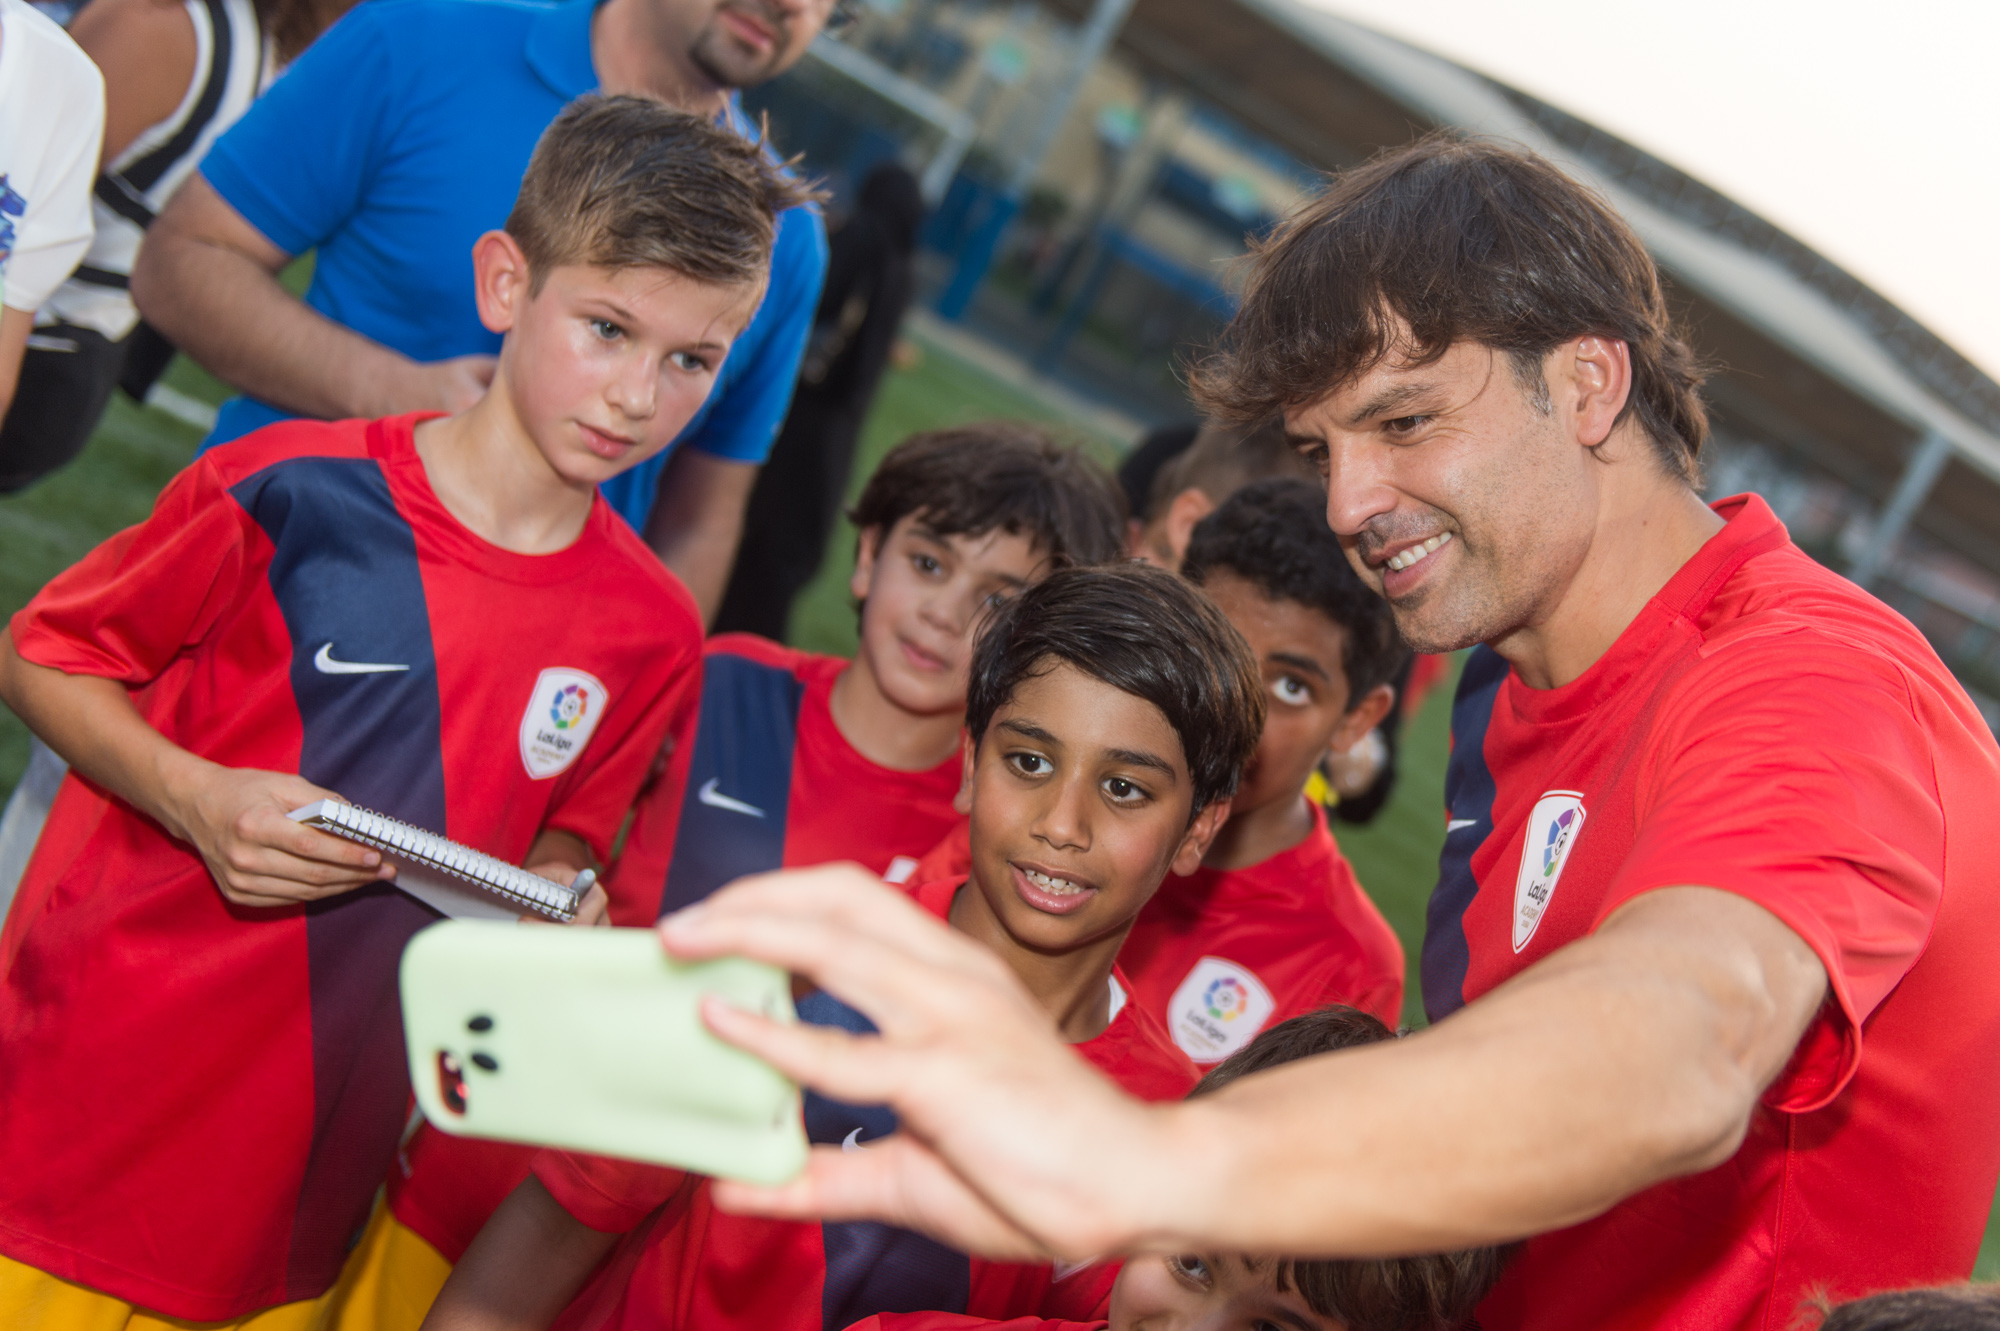 Real Madrid Legend Fernando Morientes Surprise Visit to LaLiga Academy in Abu Dhabi